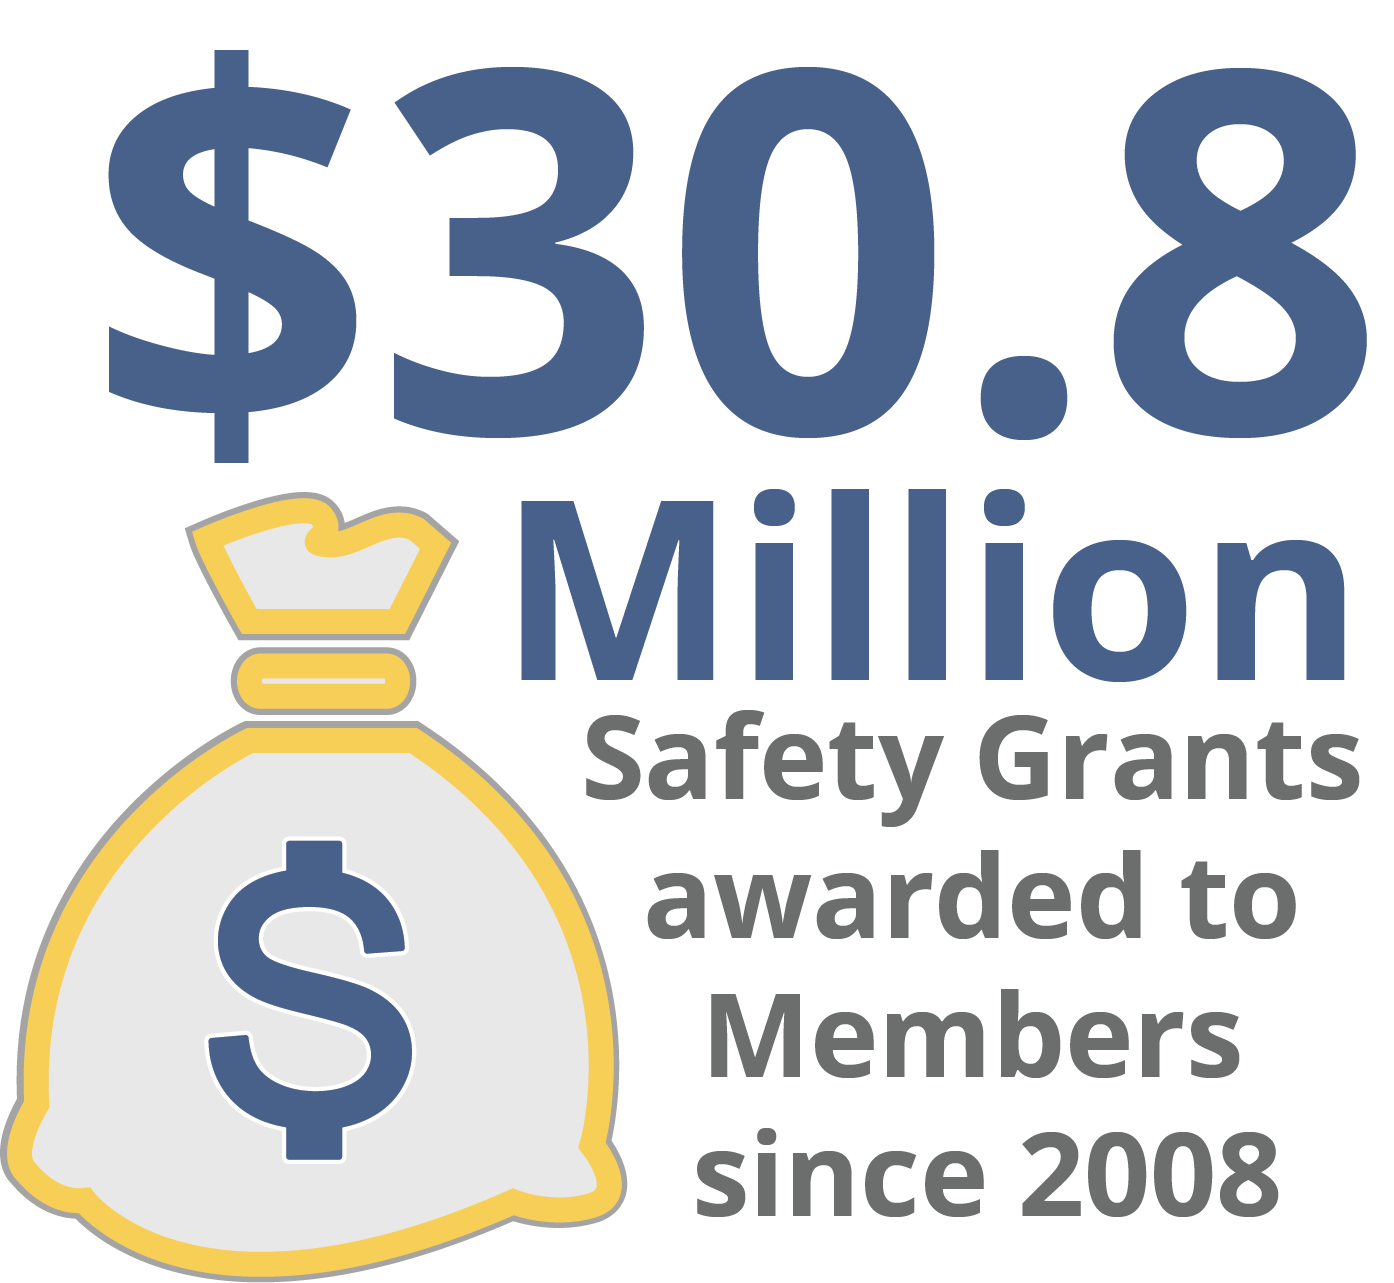 $30.8 Million Safety Grants awarded to Members since 2008